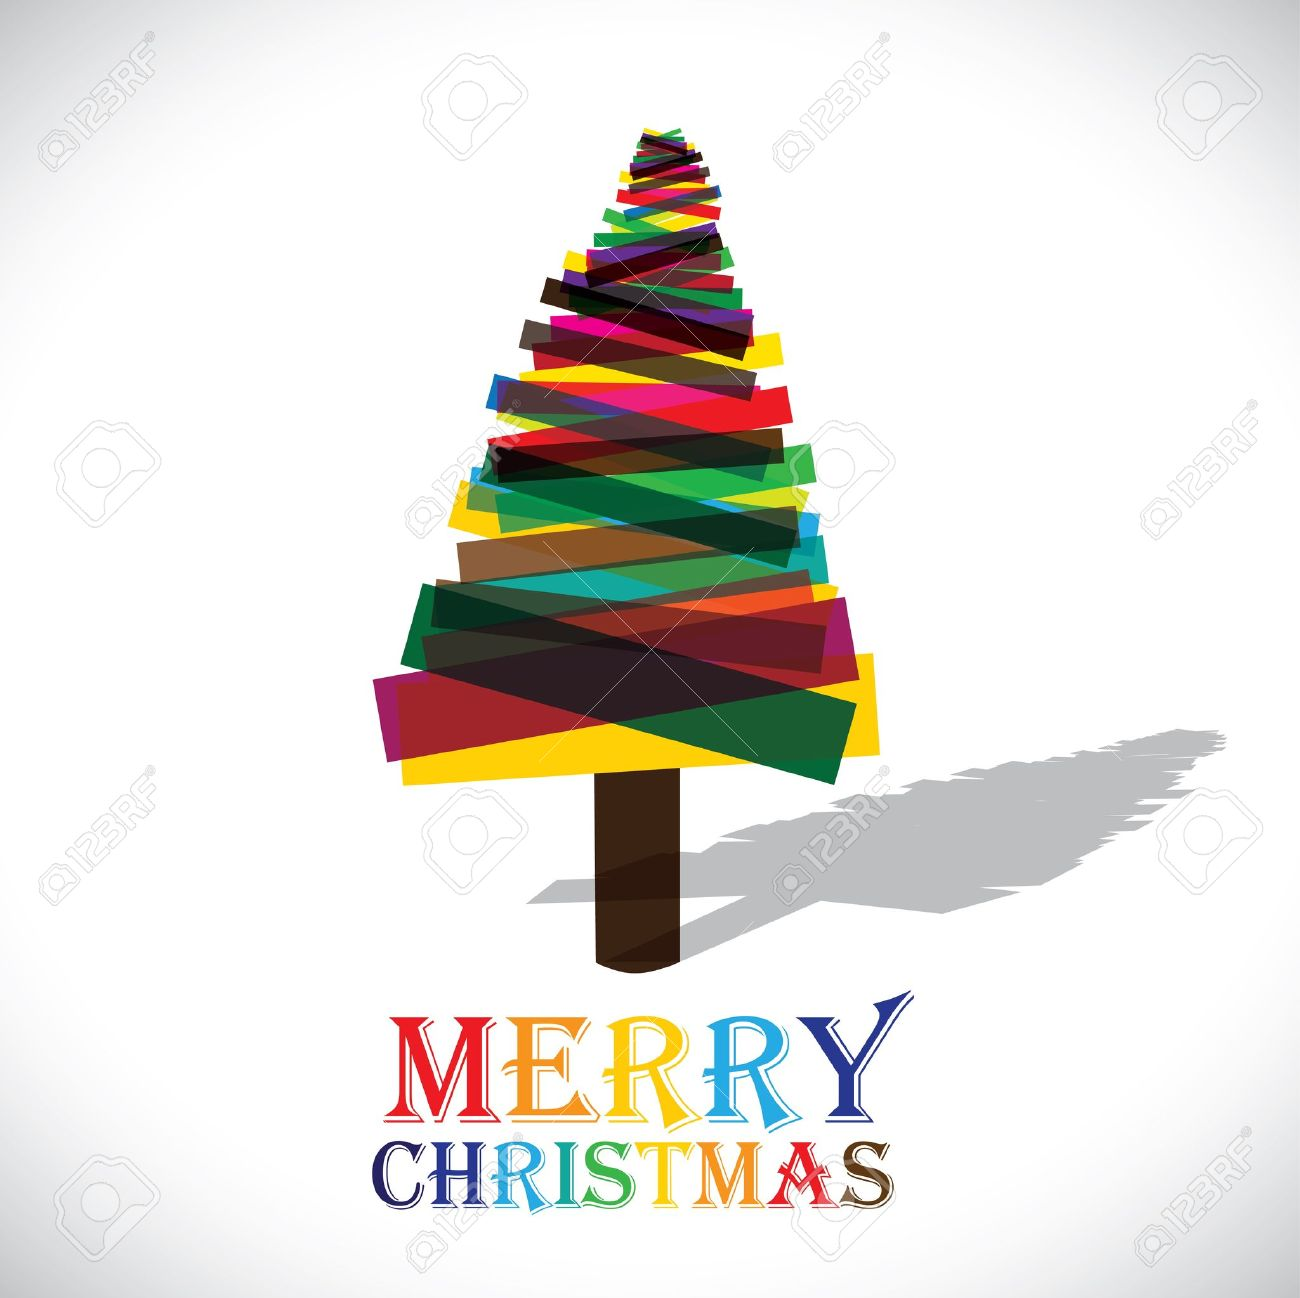 Christmas Graphics Vector.Abstract Colorful Xmas Tree On White Background Vector Graphic